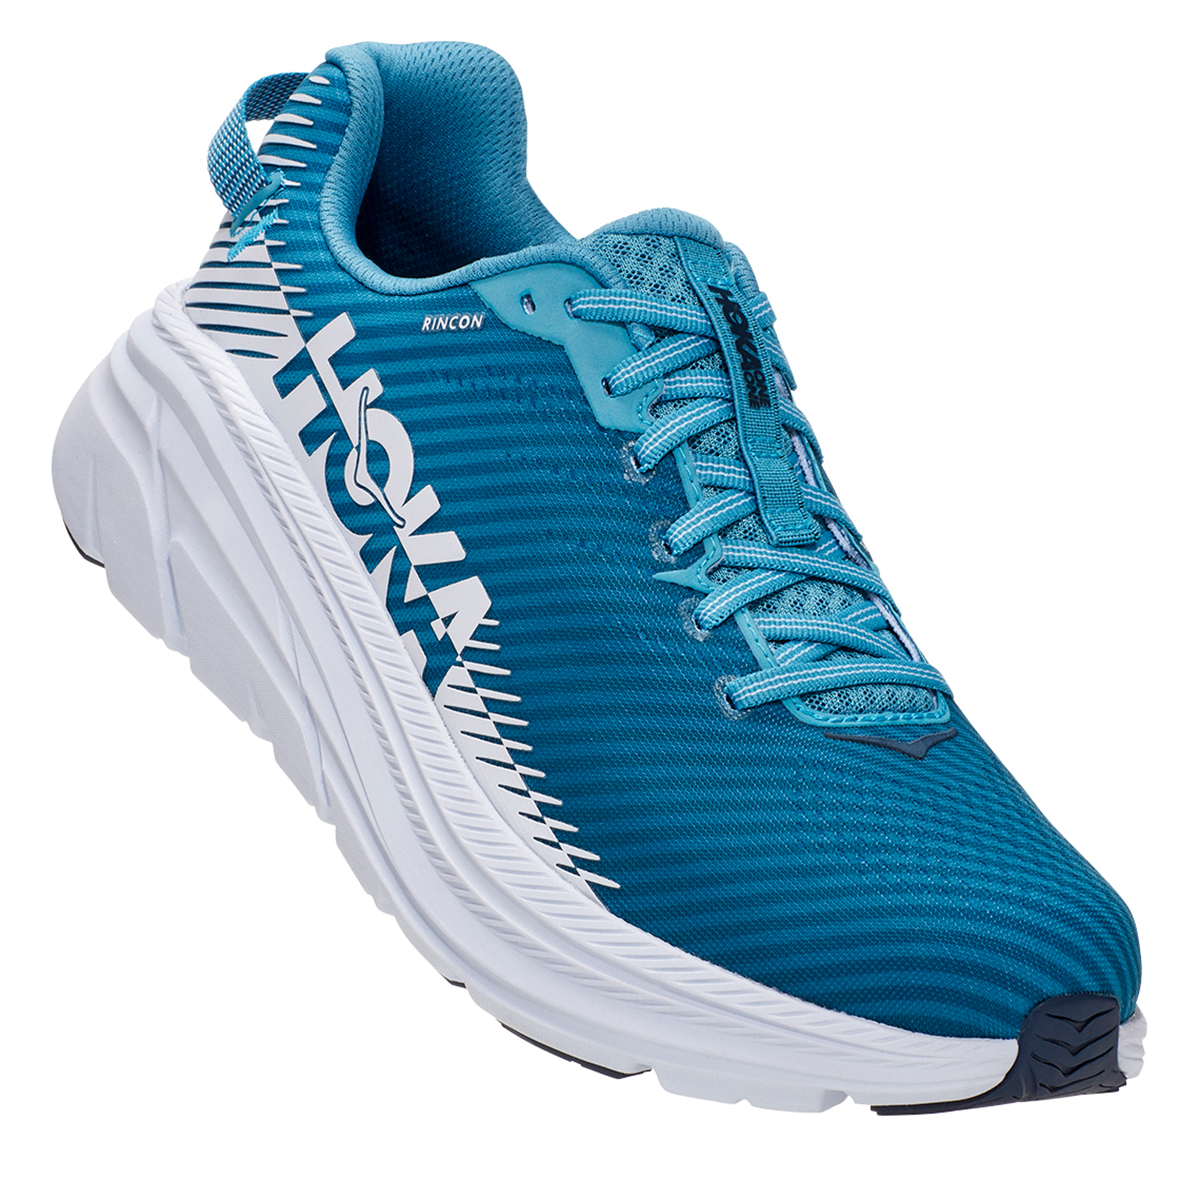 Men's Hoka One One Rincon 2 Running Shoe - Color: Blue Moon/White - Size: 7 - Width: Regular, Blue Moon/White, large, image 4